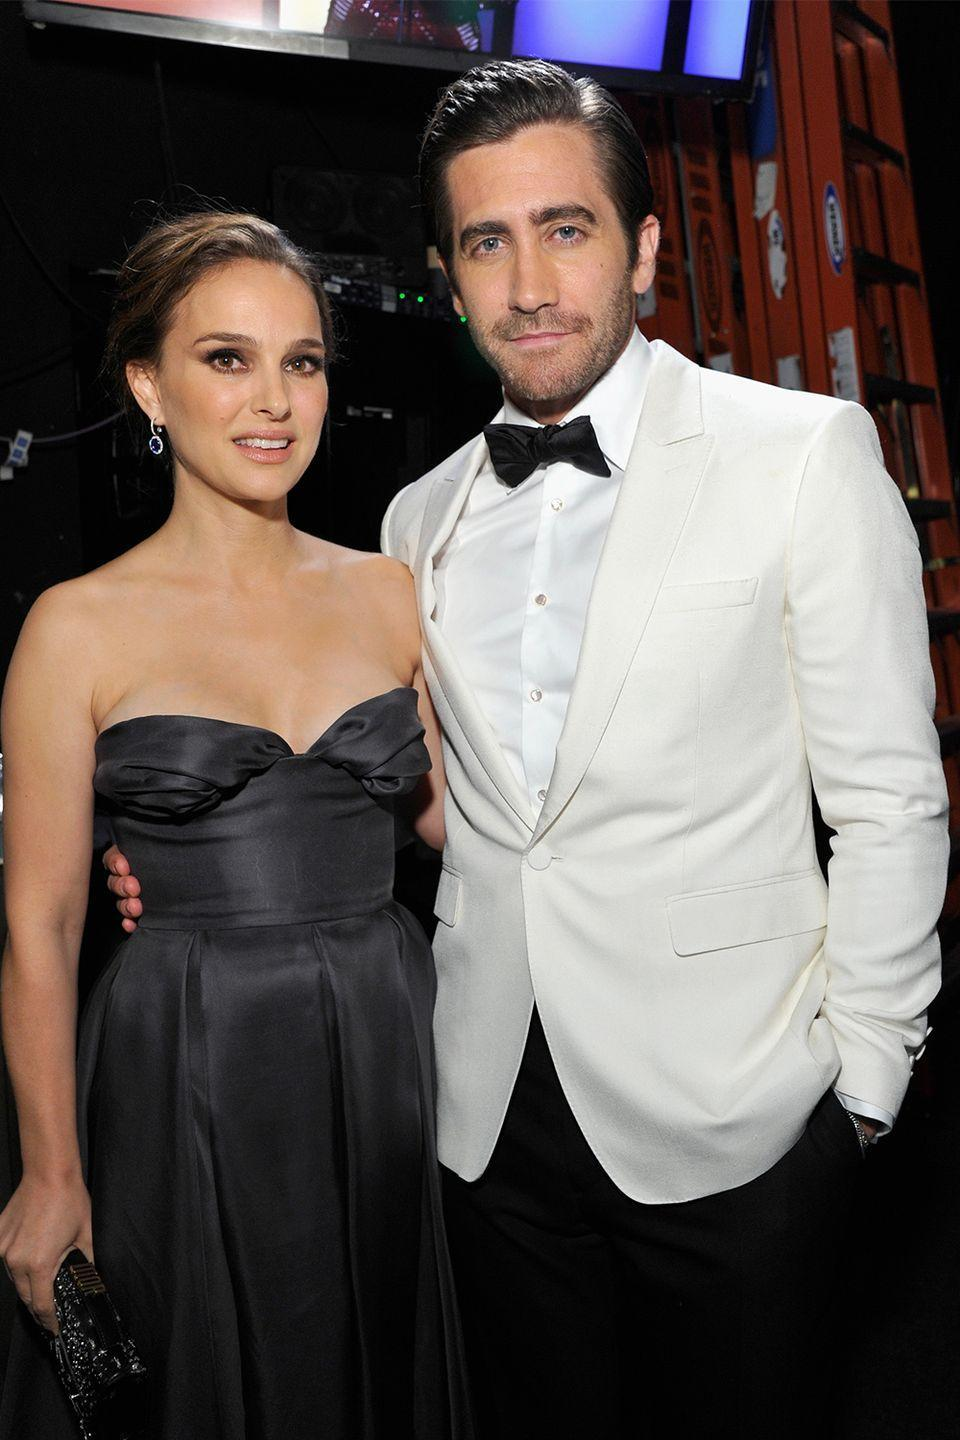 """<p>Back in 2006, Natalie Portman and Jake Gyllenhaal had a brief romance. Despite their split, they remain friends to this day, and he's even joked about what it was like dating the<em> Black Swan</em> star.</p><p>""""She's a vegan, which makes it really frustrating when you're picking a place to eat,"""" he joked when presenting her the """"<a href=""""https://www.eonline.com/news/219592/natalie-portman-flashes-her-bling-in-palm-springs"""" rel=""""nofollow noopener"""" target=""""_blank"""" data-ylk=""""slk:Desert Palm Achievement Award"""" class=""""link rapid-noclick-resp"""">Desert Palm Achievement Award</a>"""" in 2011—though it's likely that's not why they broke up. <br></p>"""